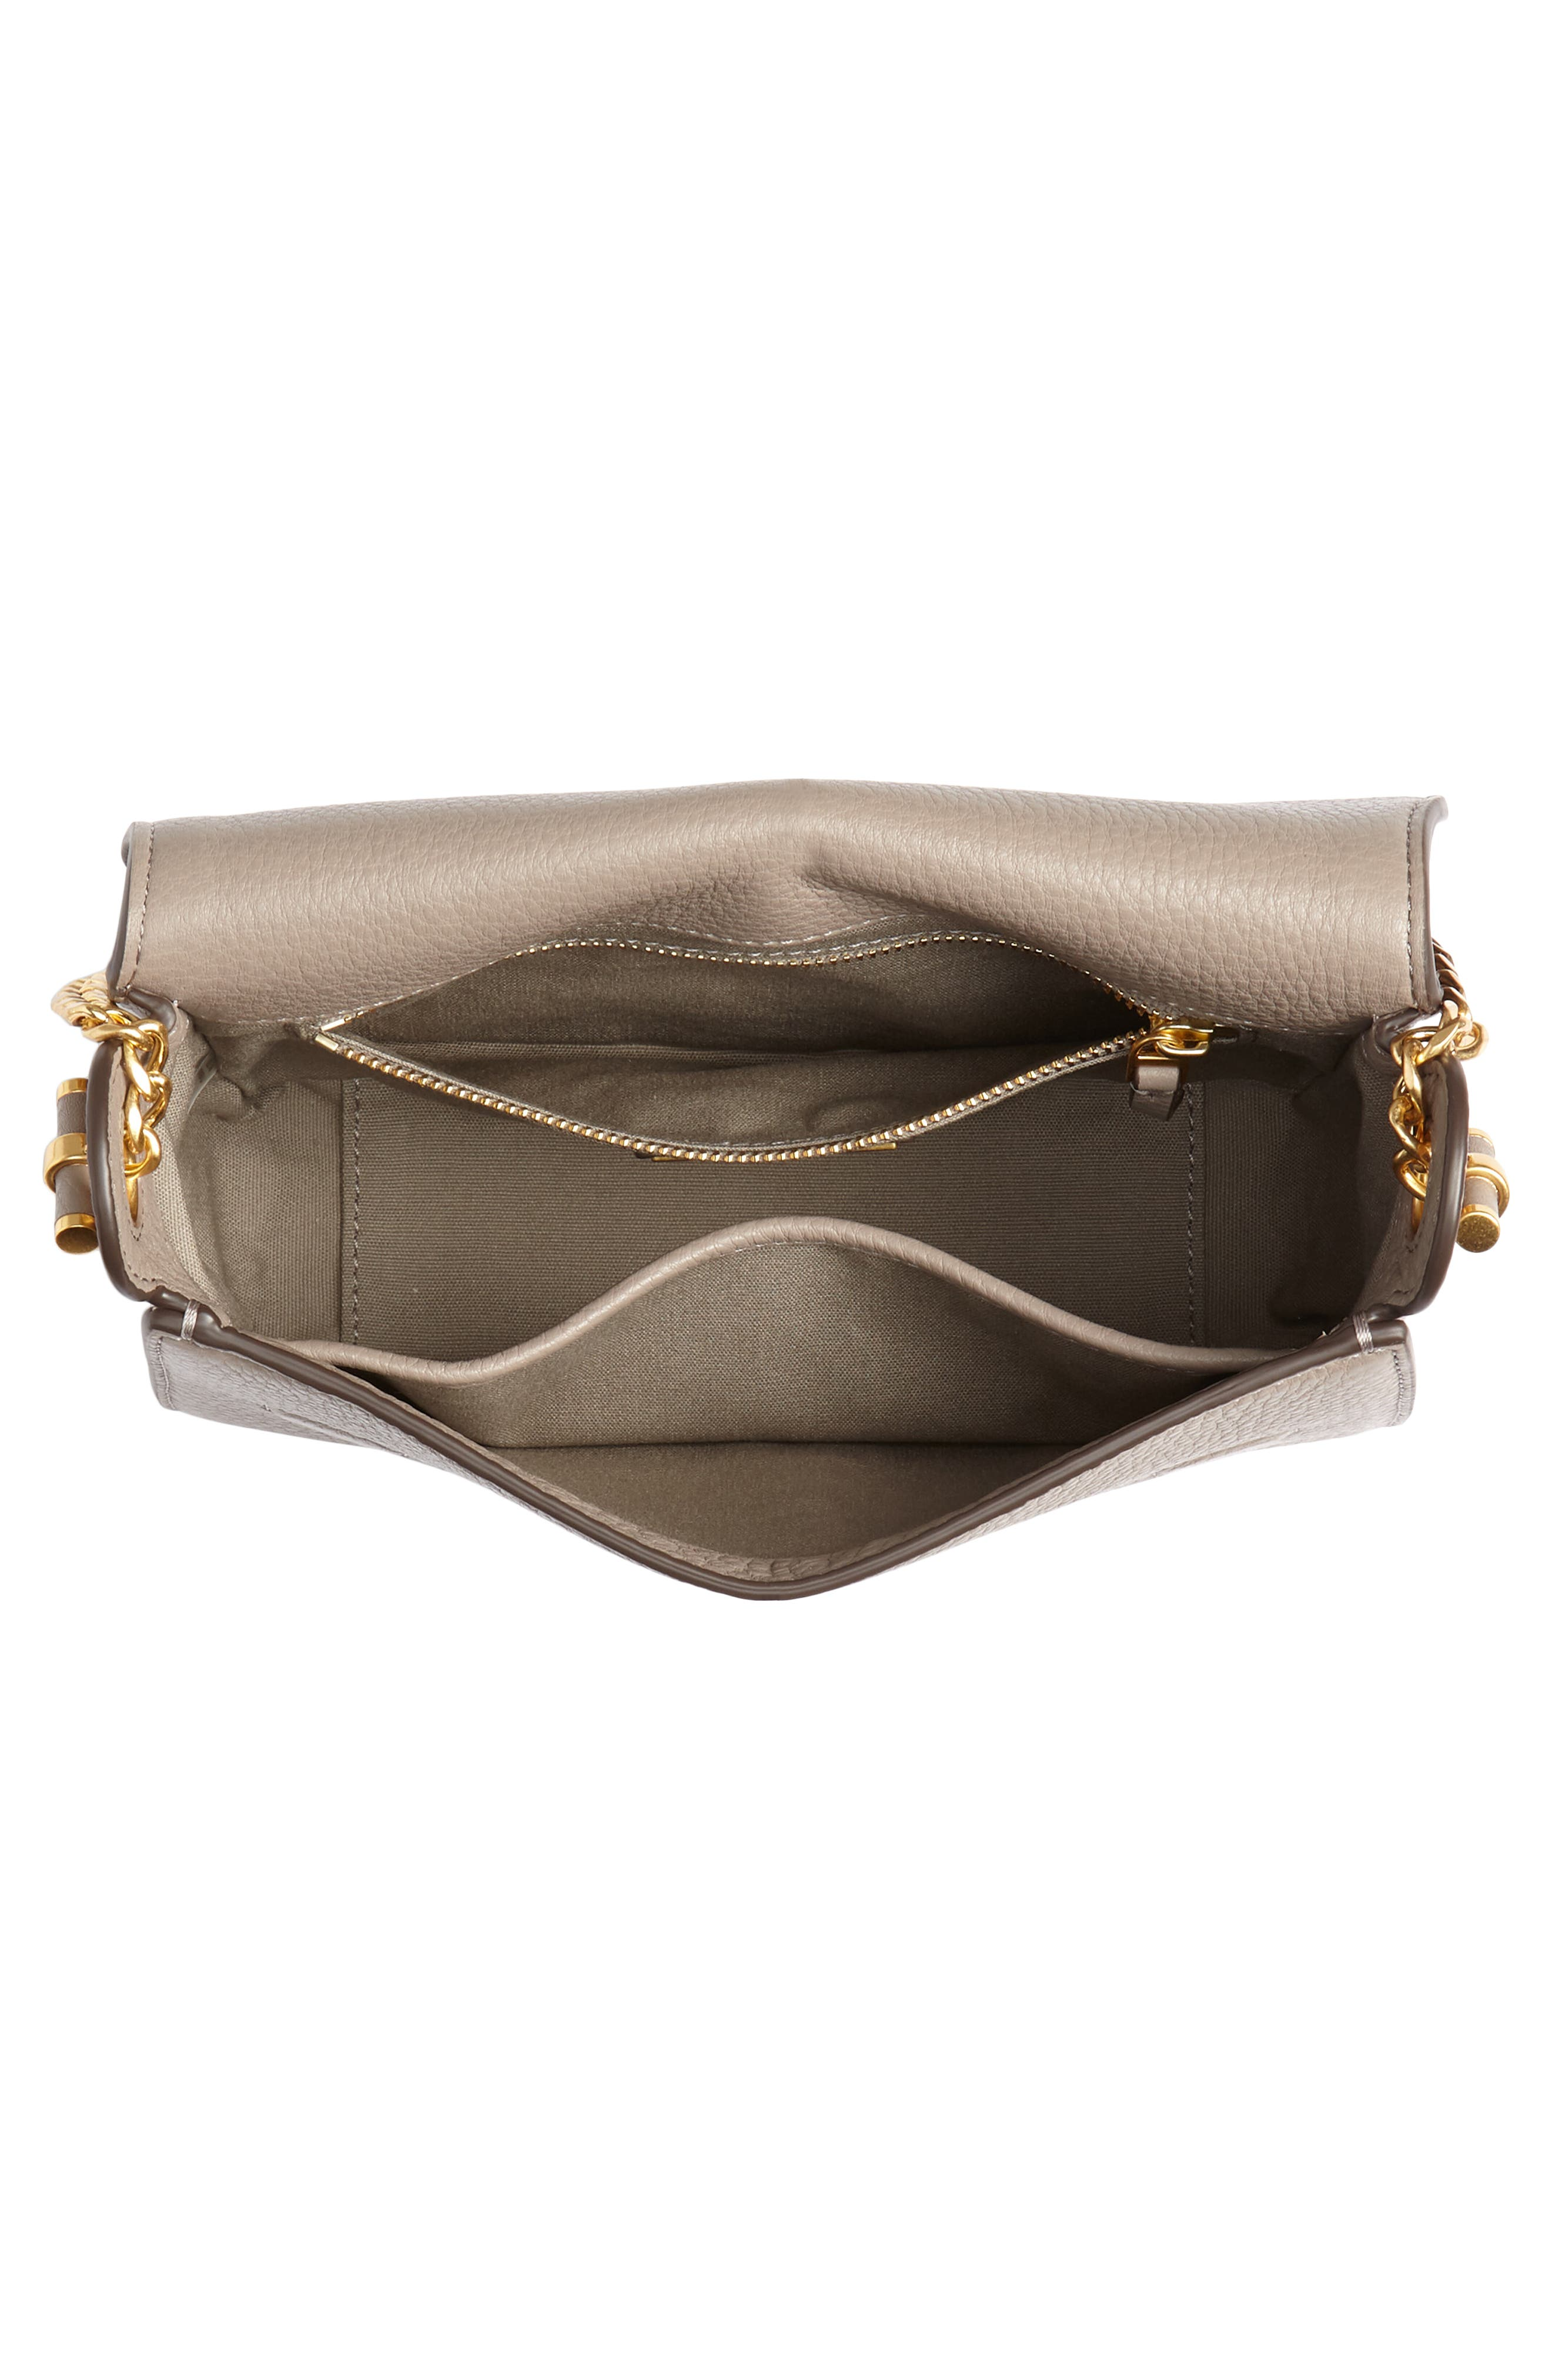 Chelsea Leather Crossbody Bag,                             Alternate thumbnail 4, color,                             GRAY HERON